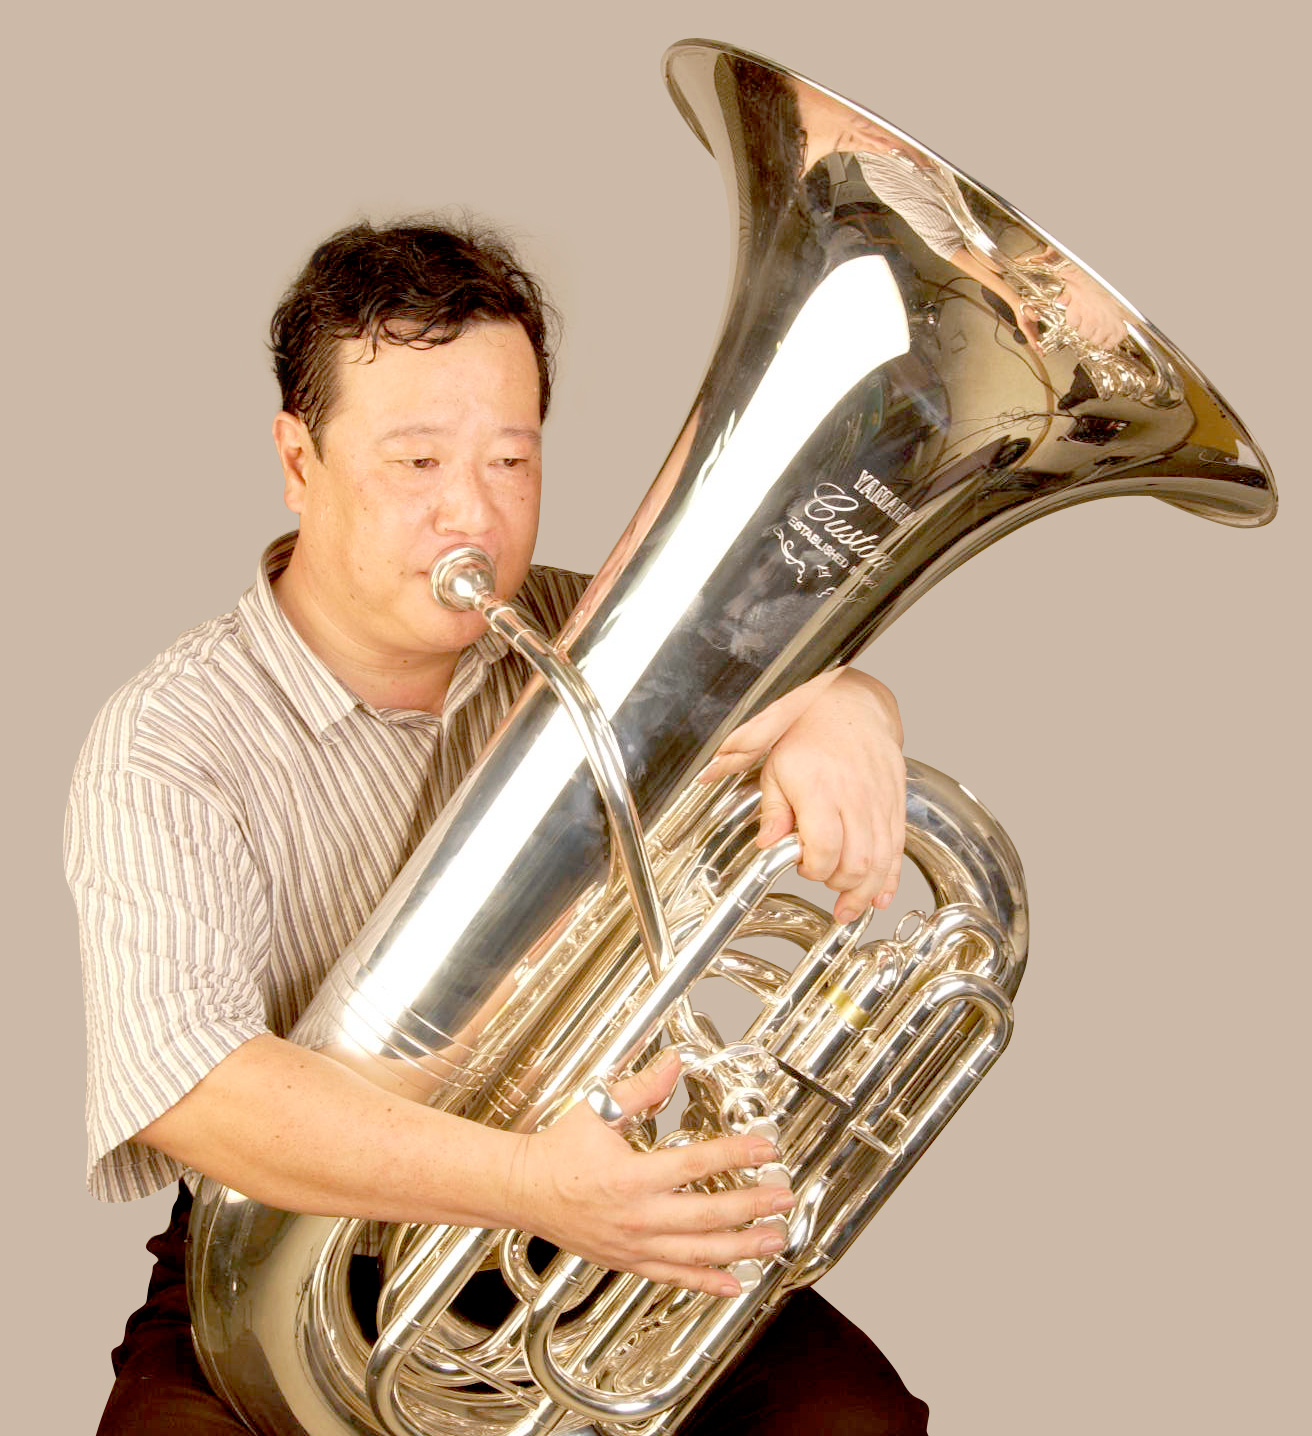 Front-action tubas have the bell on the player's left side